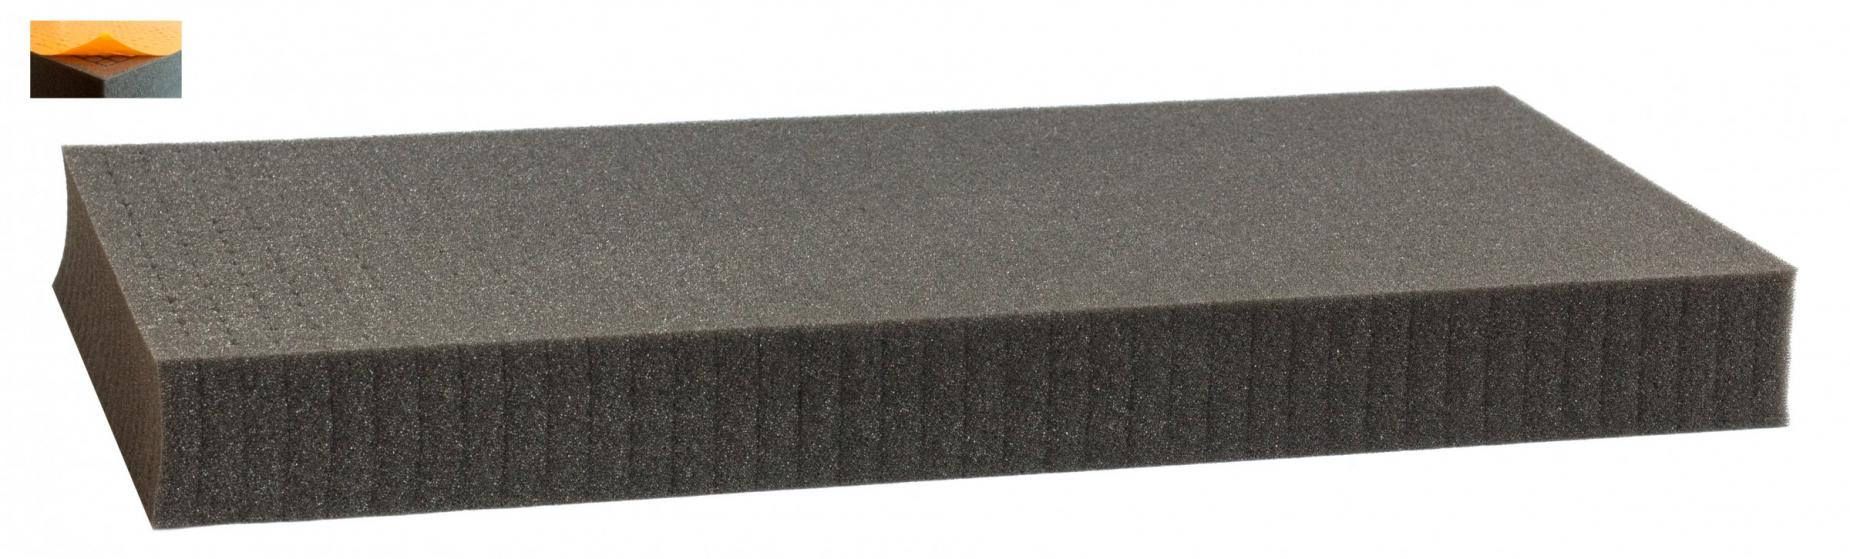 500 mm x 250 mm x 50 mm - Raster 12,5 mm - Pick and Pluck / Pre-Cubed foam tray self-adhesive